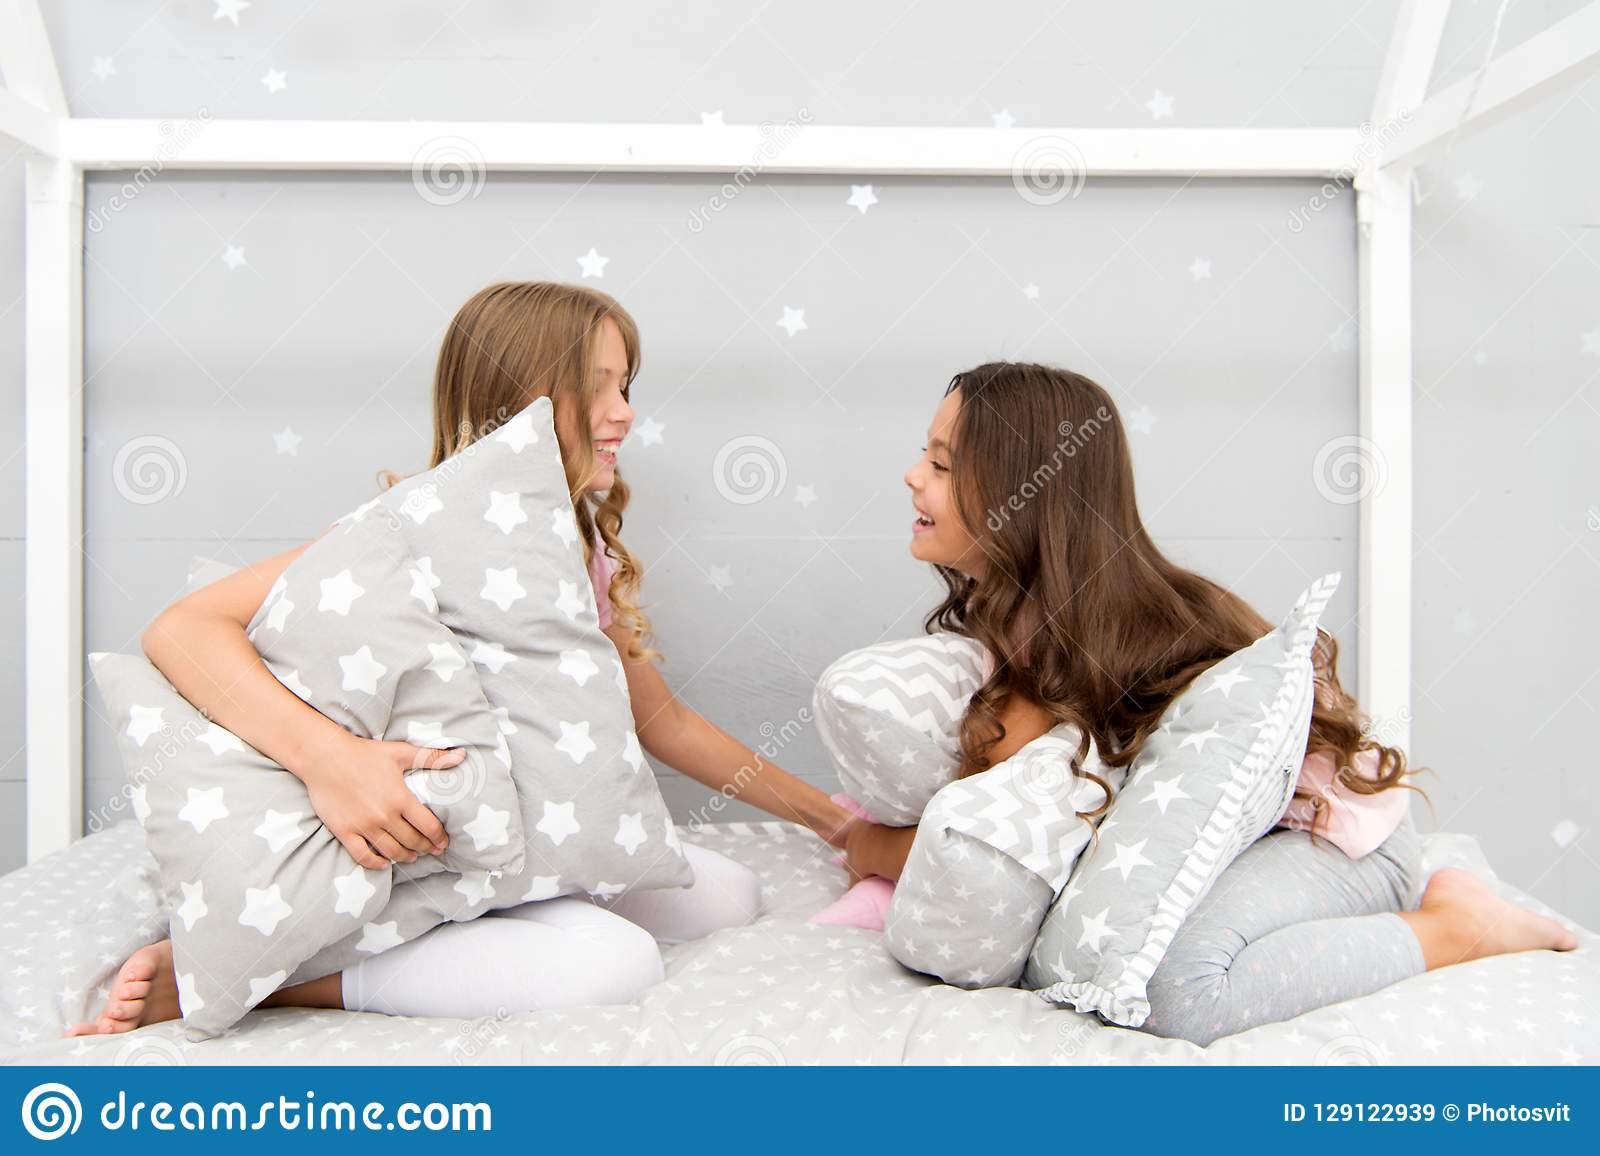 b6d008a15c Sleepover time for pillow fight. Girls sleepover party ideas. Soulmates  girls having fun sleepover party. Girls happy best friends in pajamas with  pillows ...